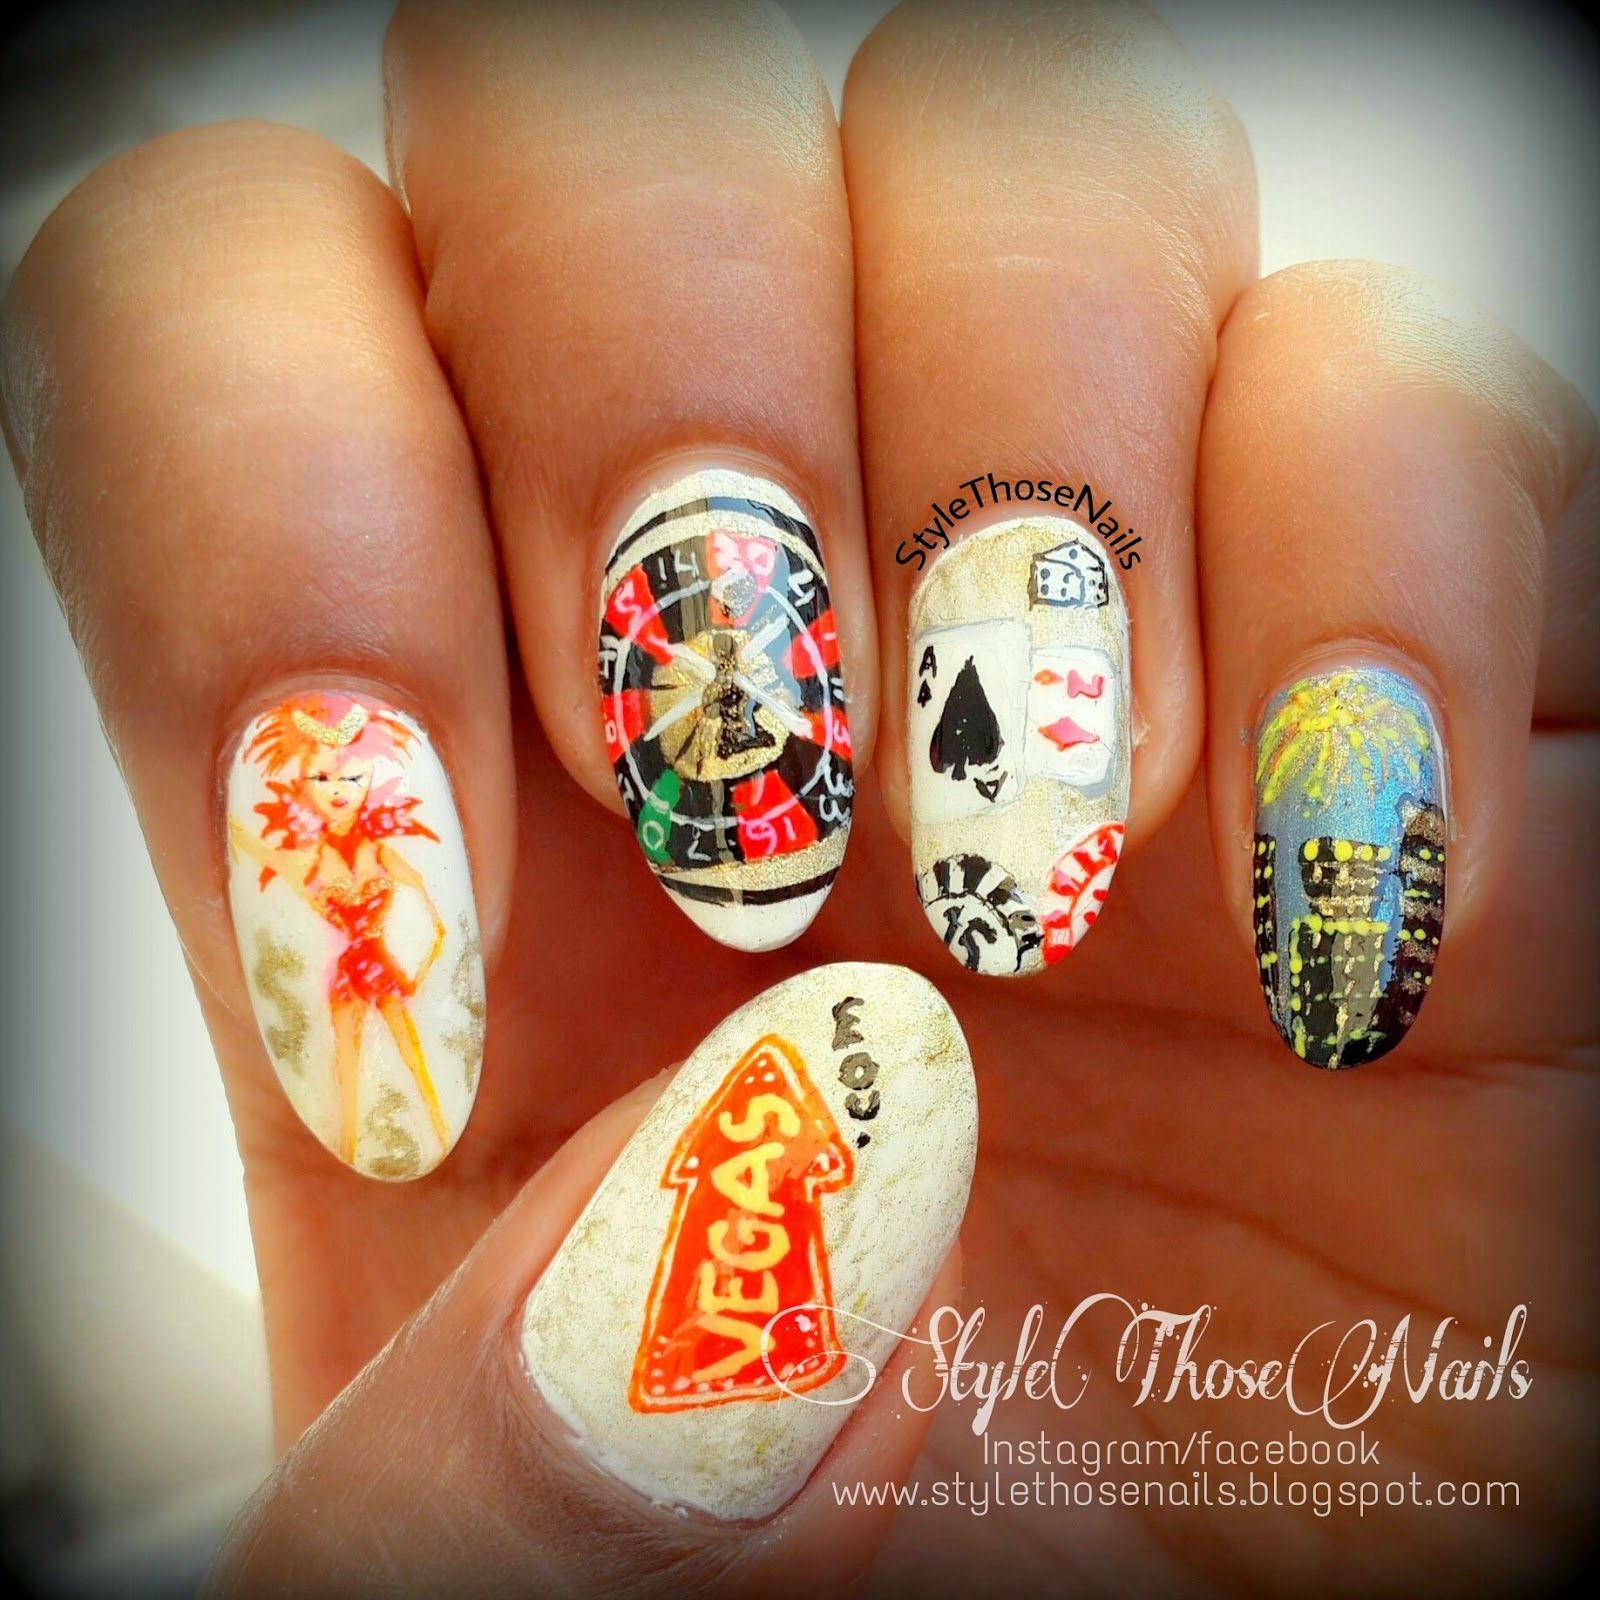 Style those nails night out in vegas a las vegas themed nail art style those nails night out in vegas a las vegas themed nail art prinsesfo Gallery